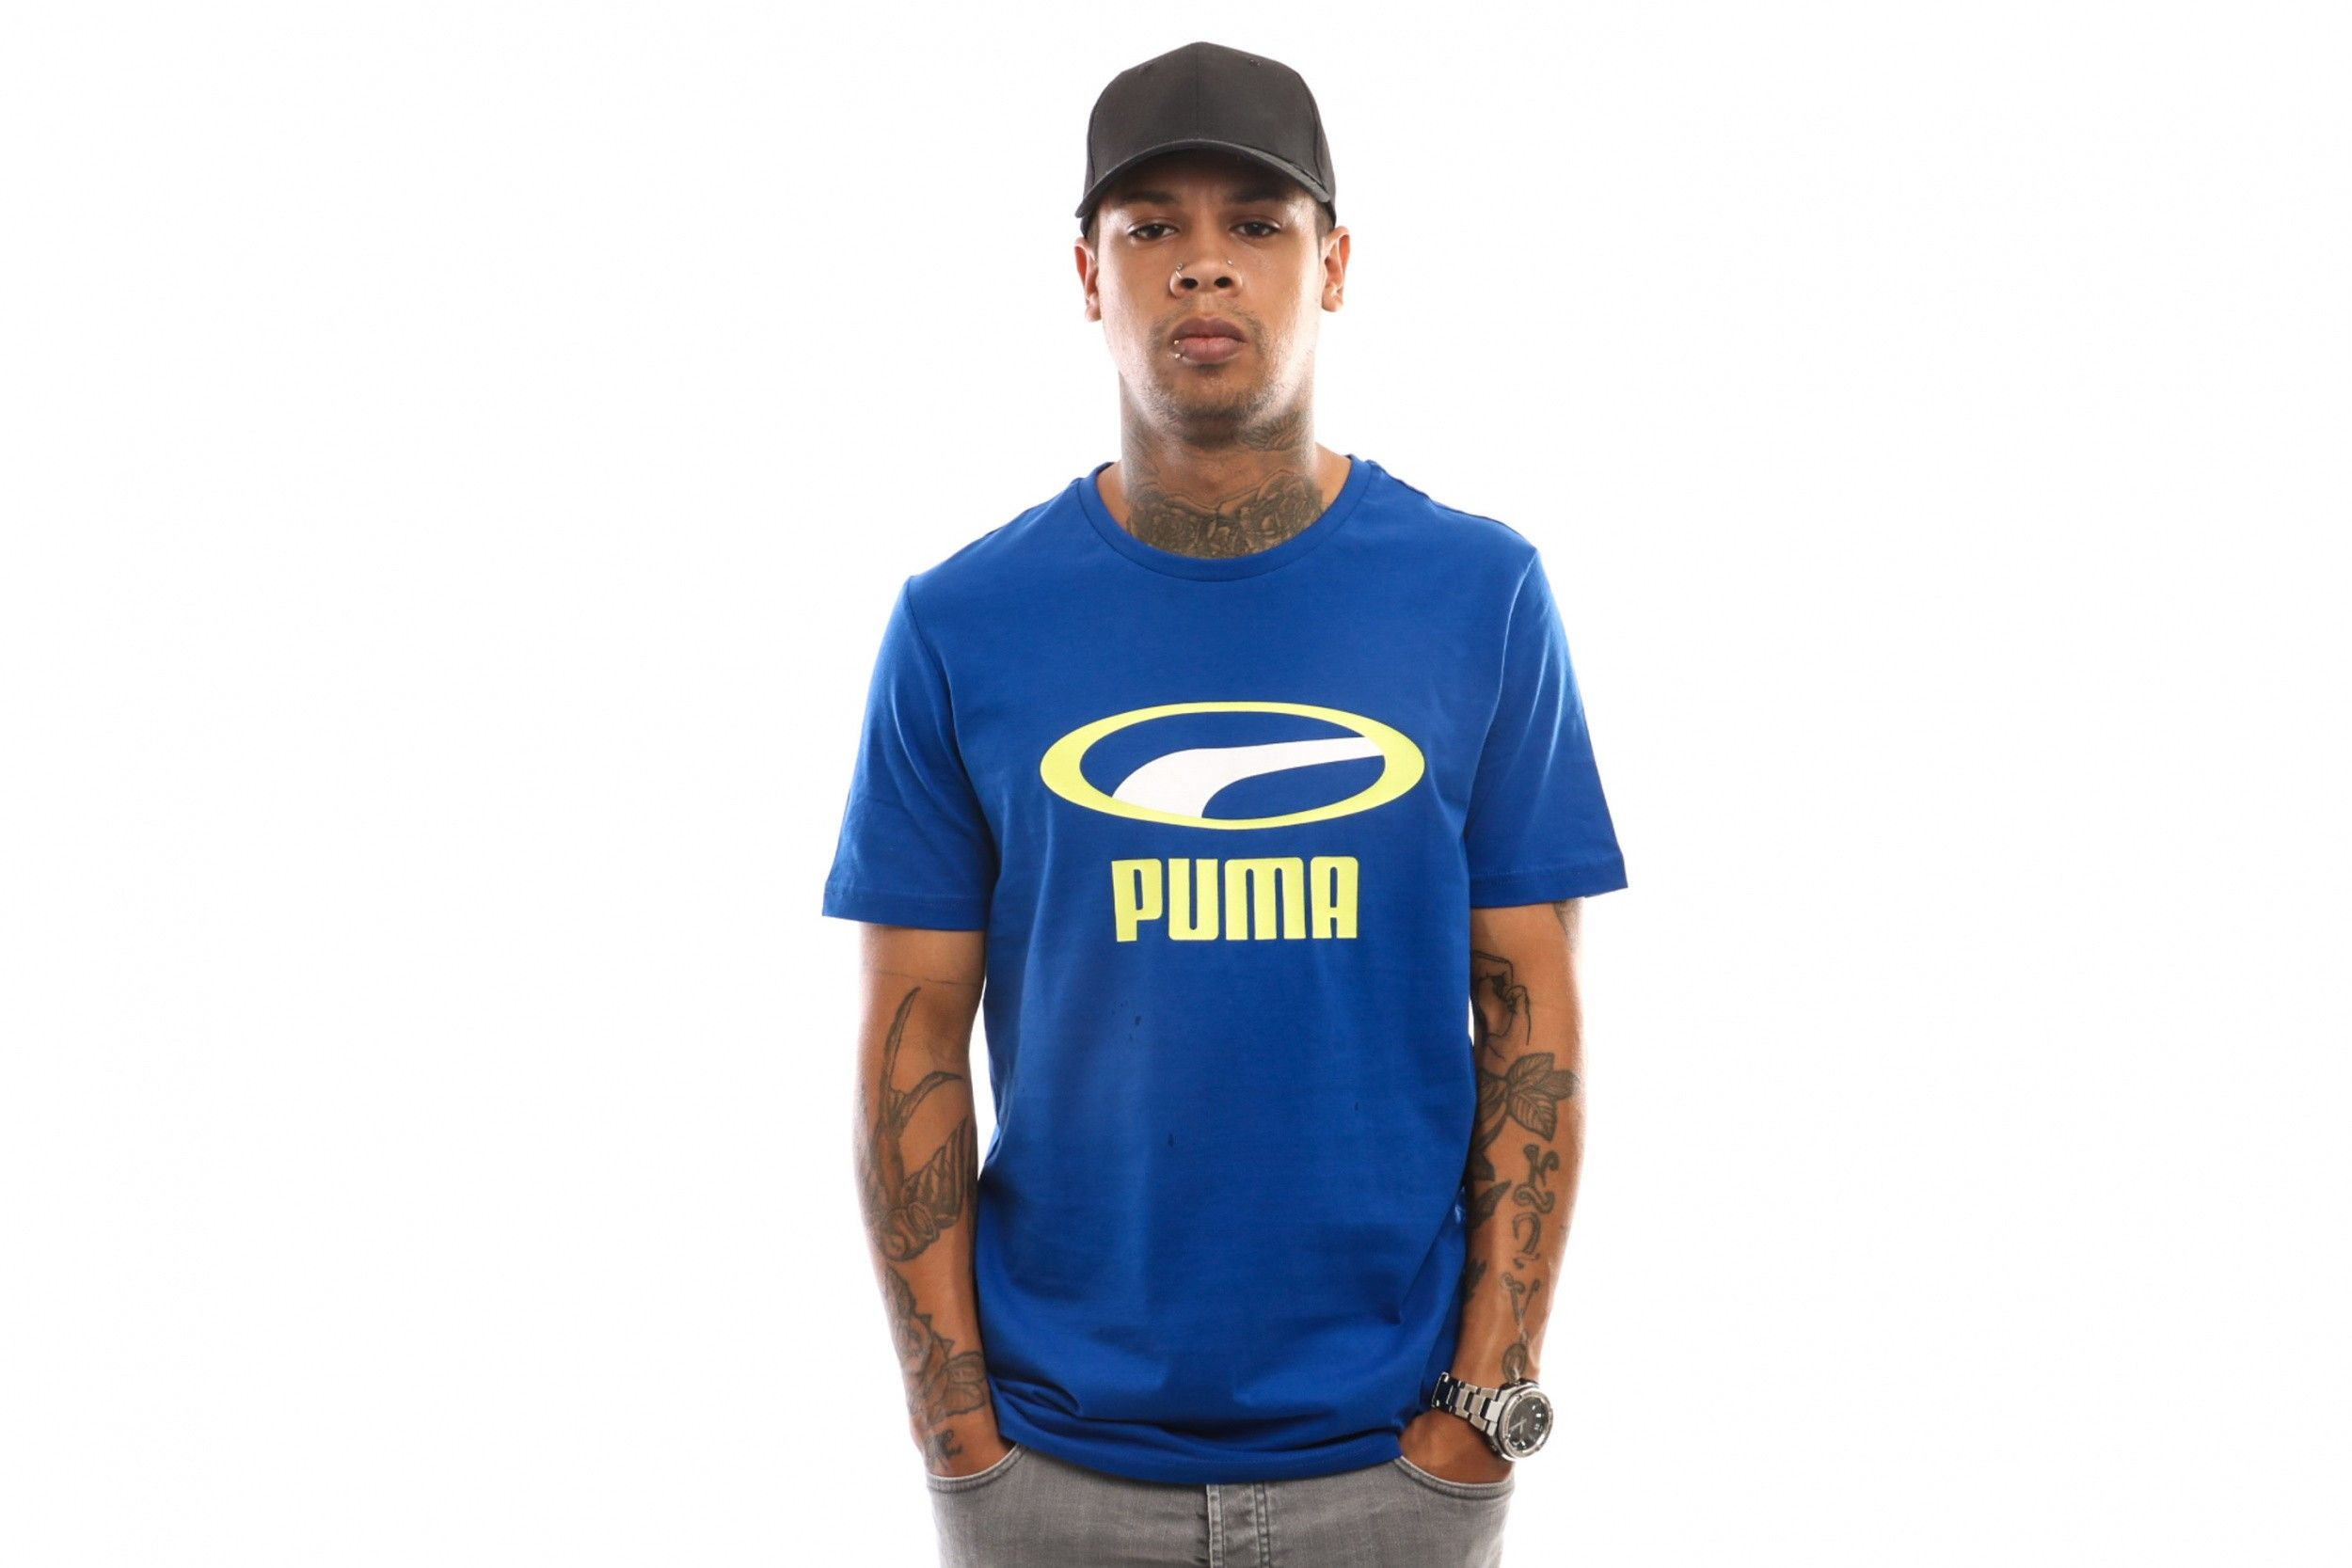 Afbeelding van Puma Graphic Tee Xtg 595663 73 T Shirt Surf The Web